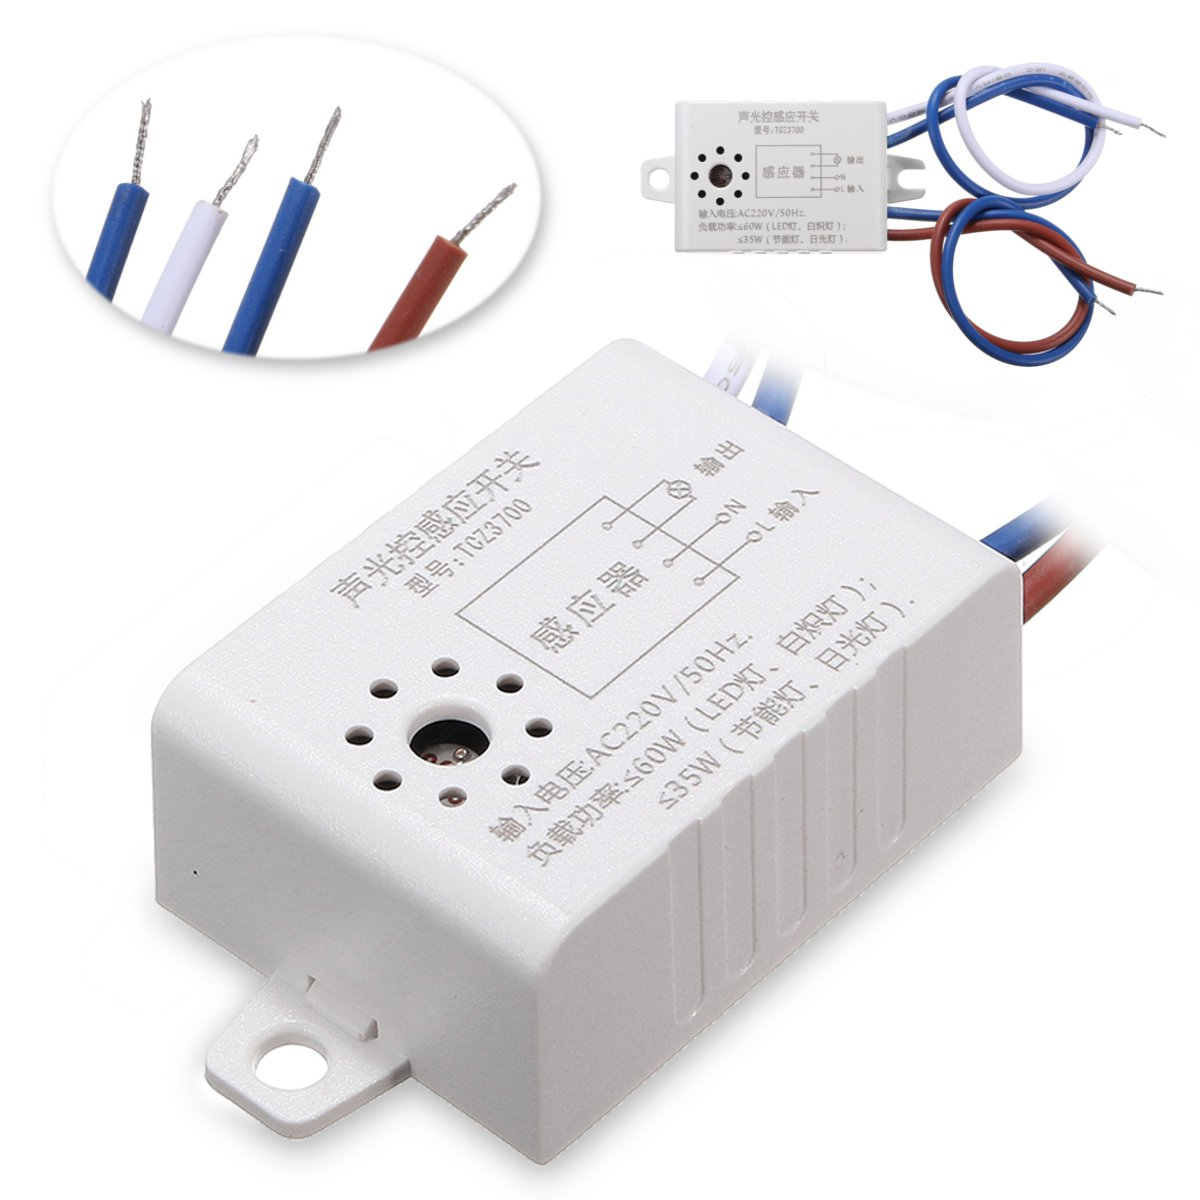 1PC New 220v Automatic On Off Street Light Switch Photo Control Sensor for AC 220V Electronic Components Sensors